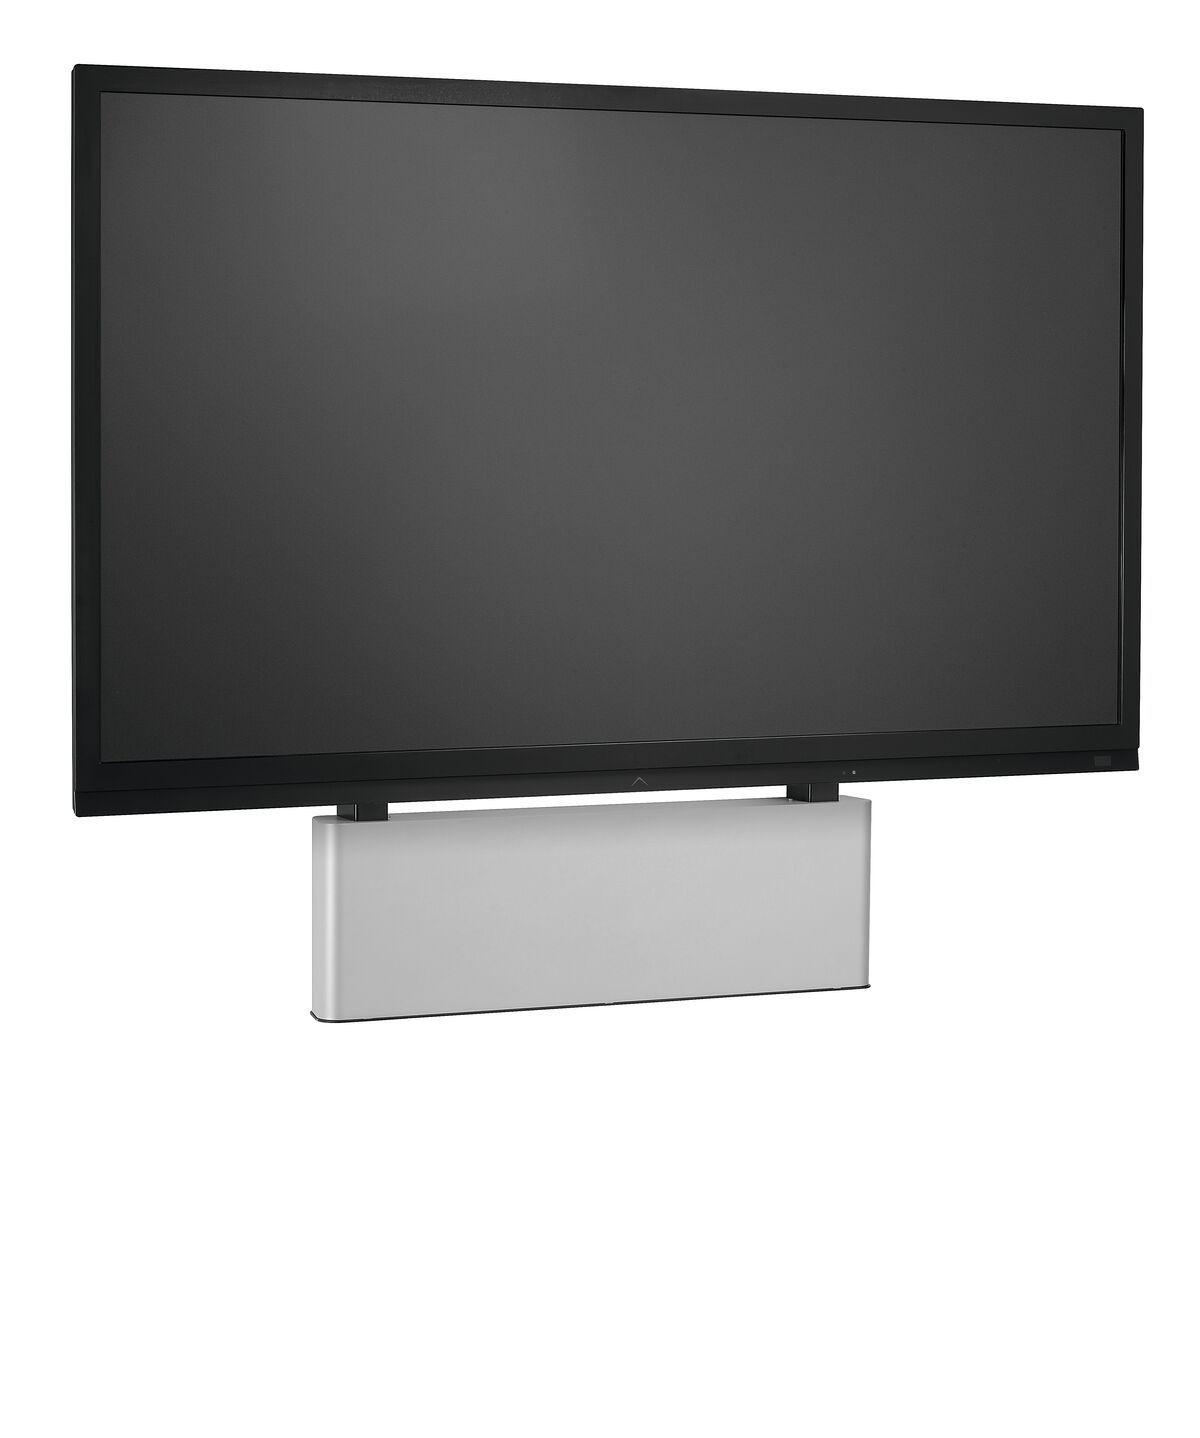 Vogel's PFWE 7150 Display wall mount motorized - Application